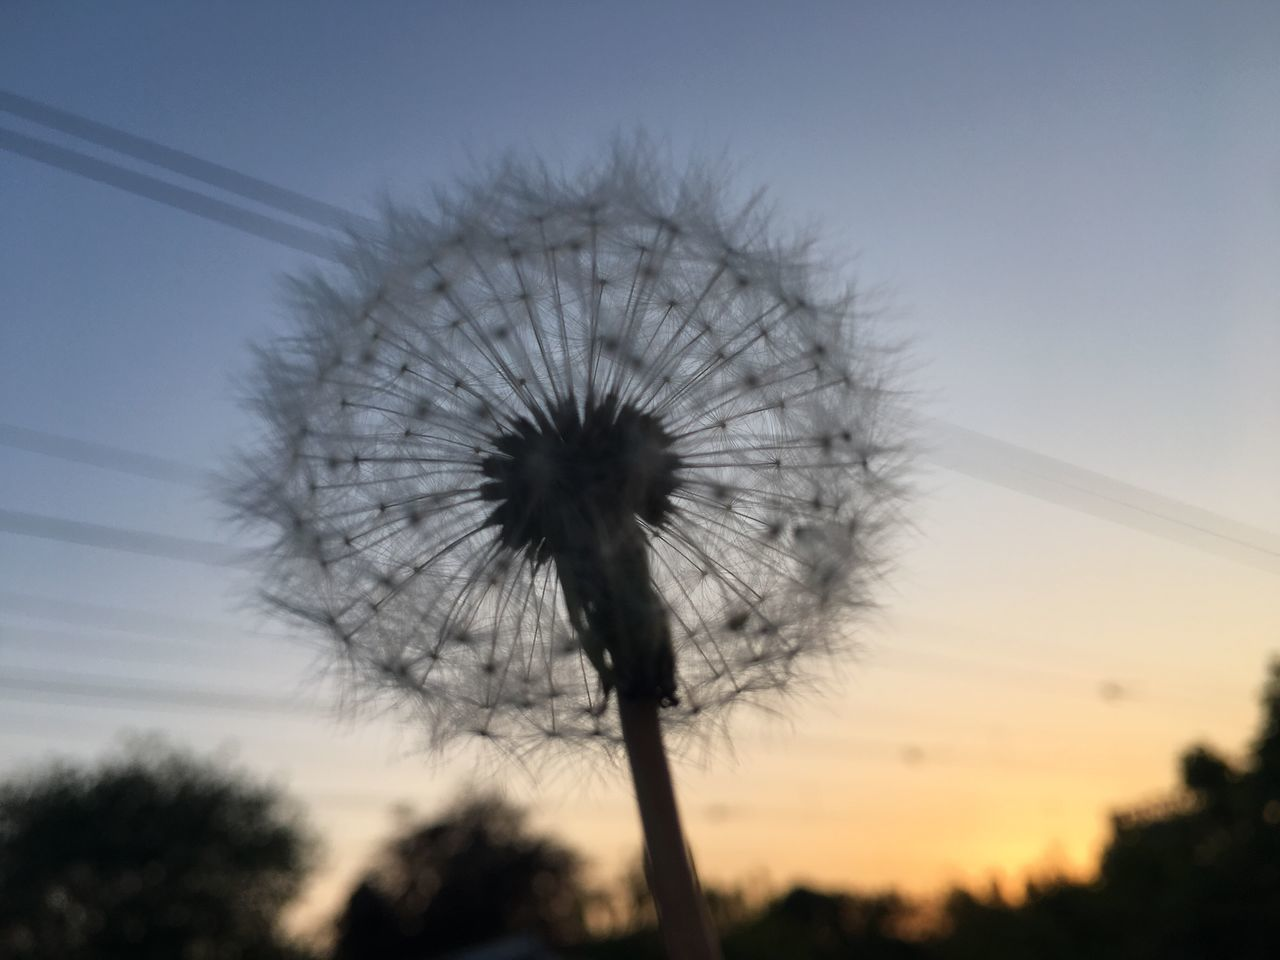 Make a wish Flower Dandelion Nature Fragility Beauty In Nature Sky Growth Low Angle View No People Outdoors Day Flower Head Sunset Close-up Freshness